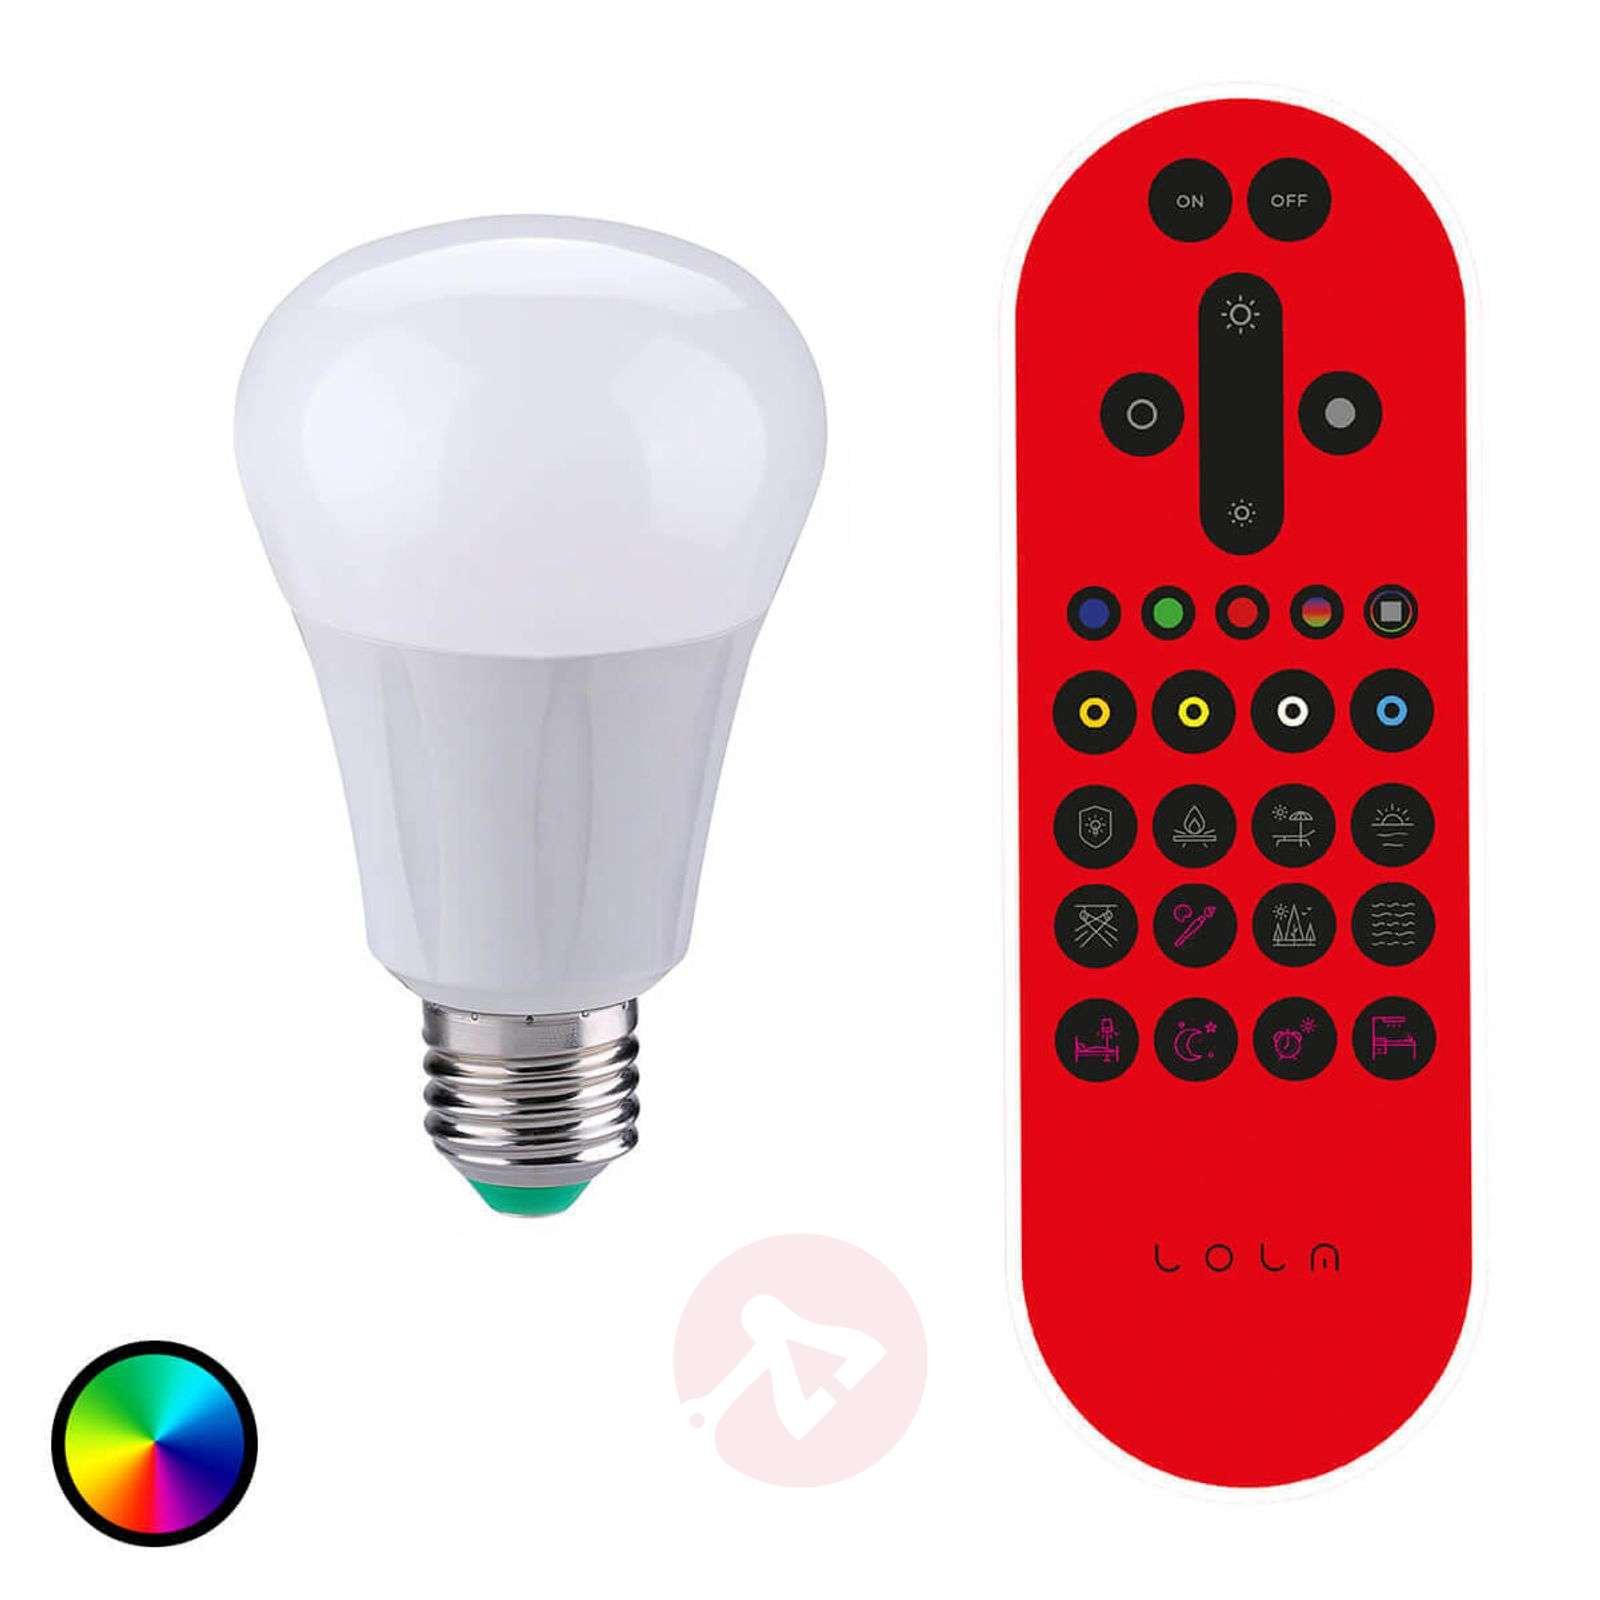 Ampoule LED LOLA E27 6,7 W RVB 550 lumens dimmable-6002898-02